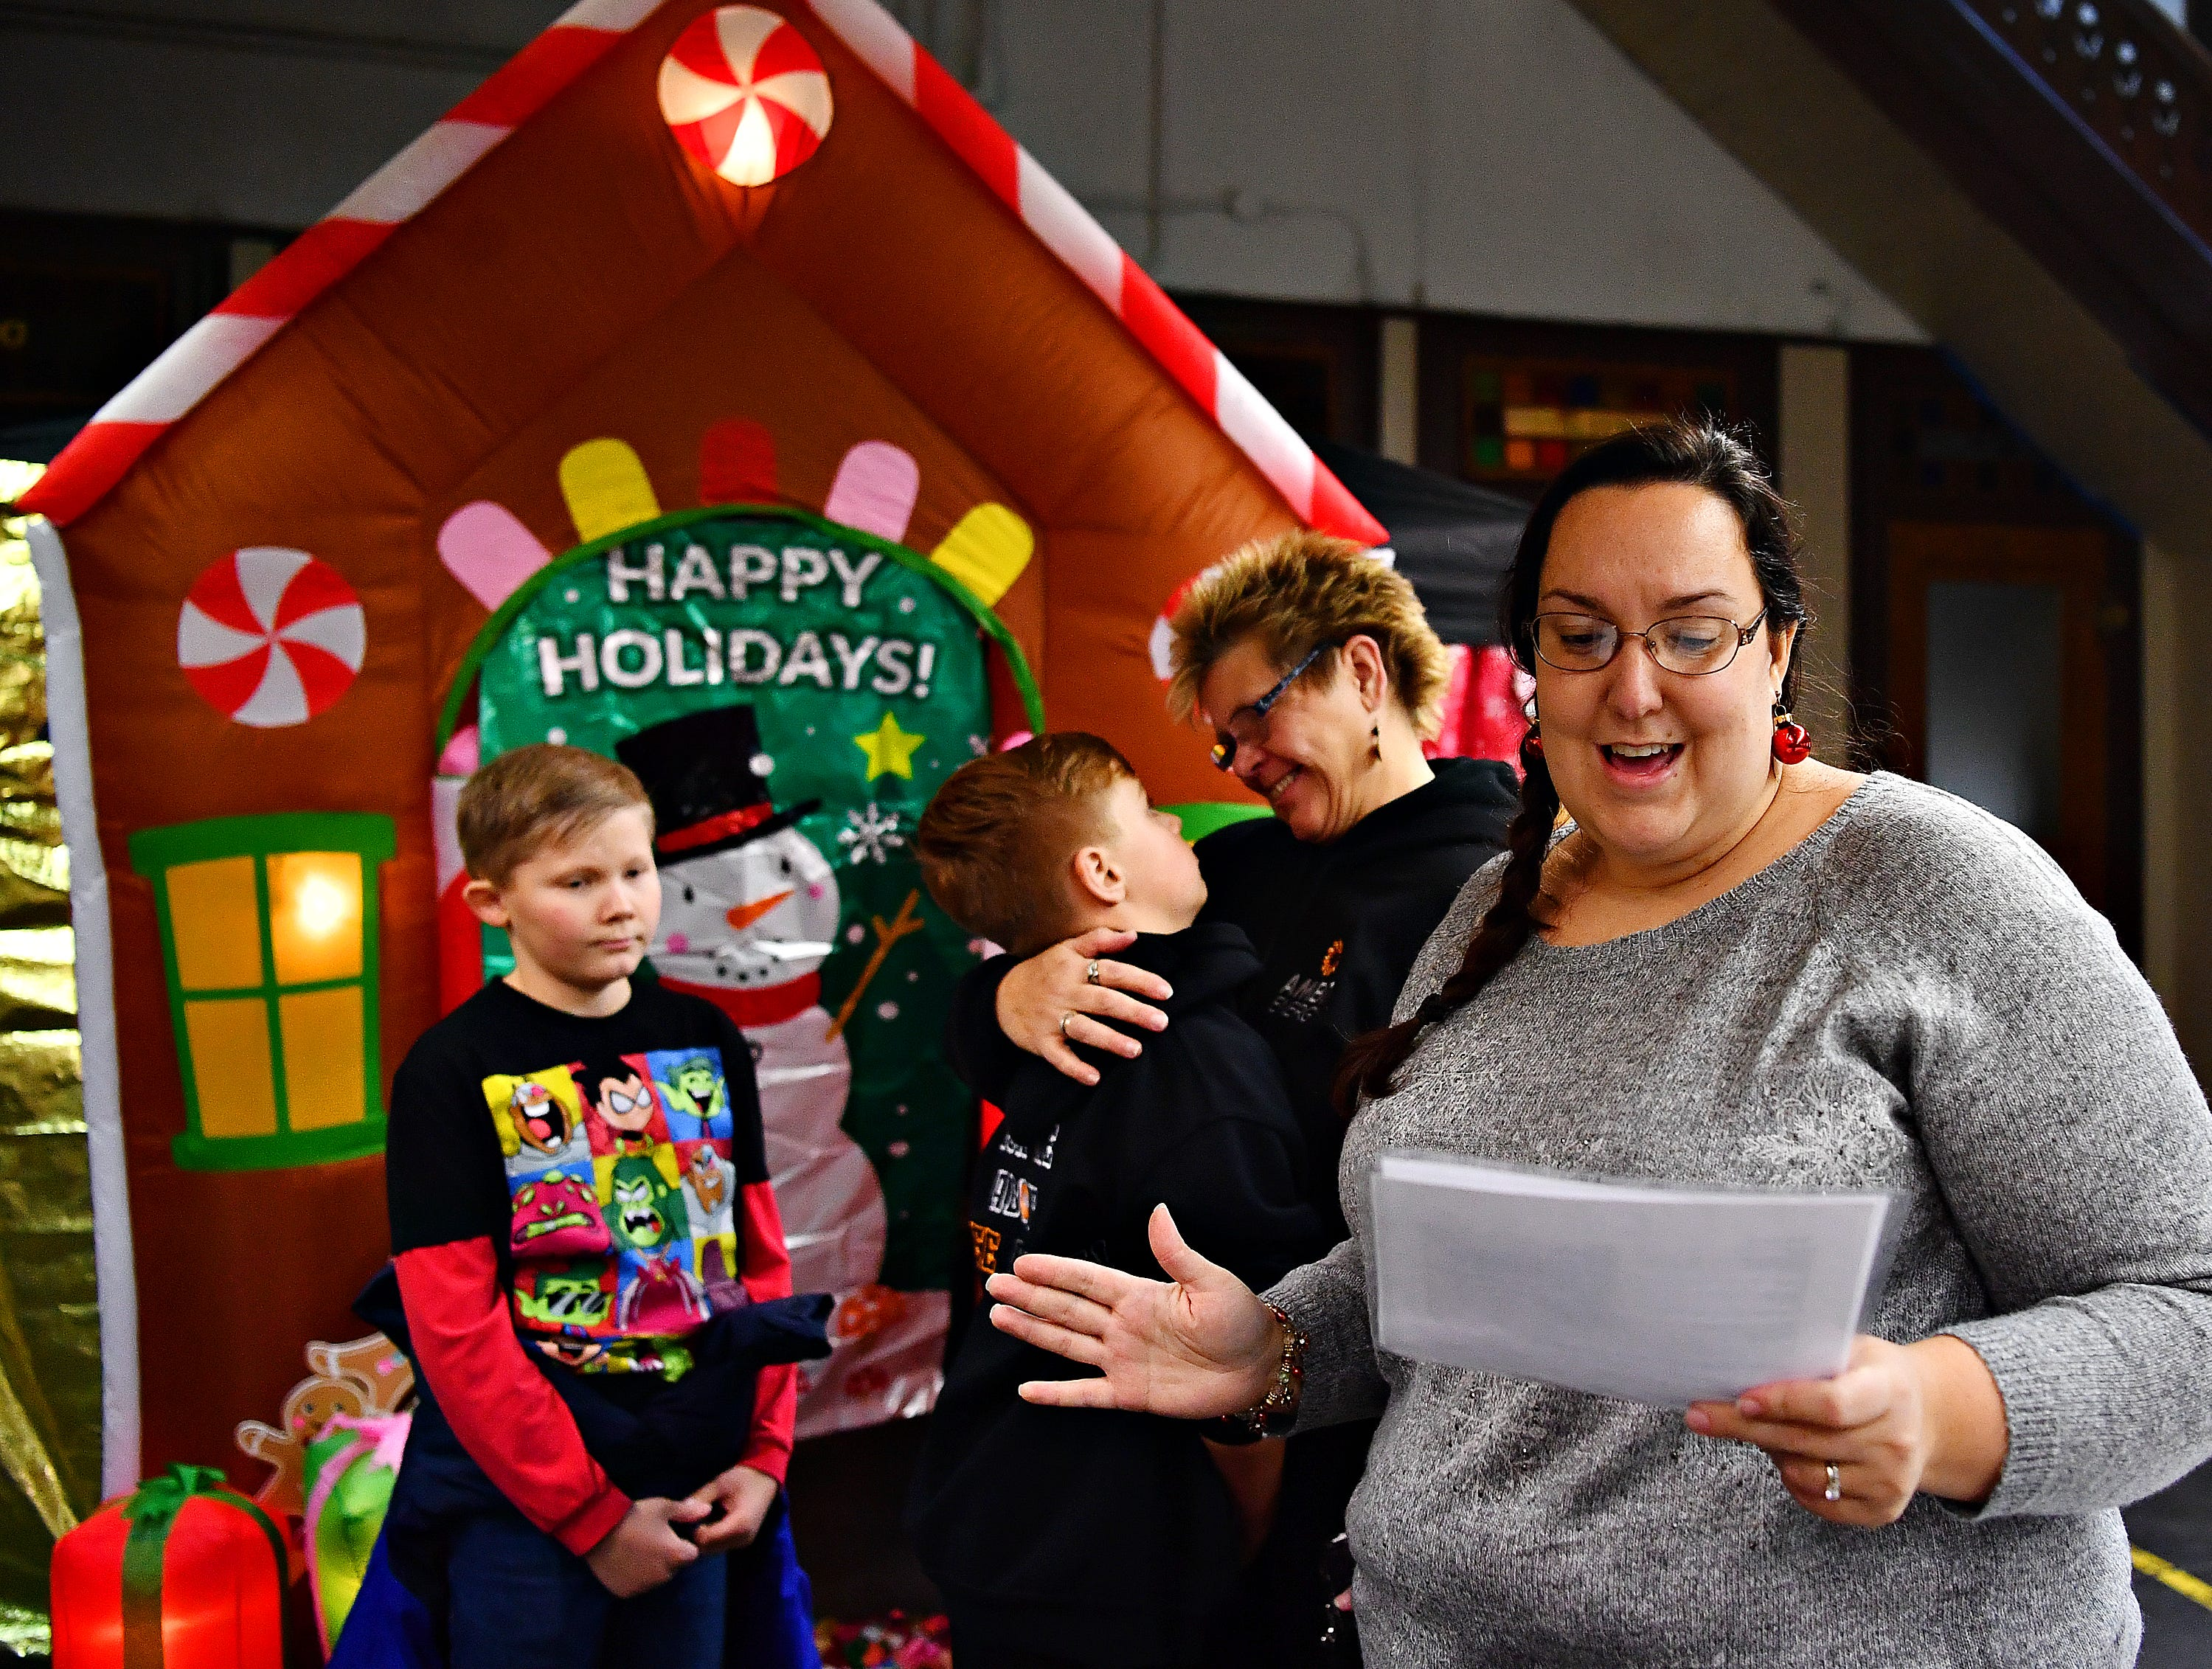 Erica Delp, back right, with Atomic Bounce, reads instructions to a group before they enter the Gingerbread-themed Escape Room at Rex/Laurel Fire Station during Light Up York festivities in York City, Saturday, Dec. 1, 2018. Dawn J. Sagert photo